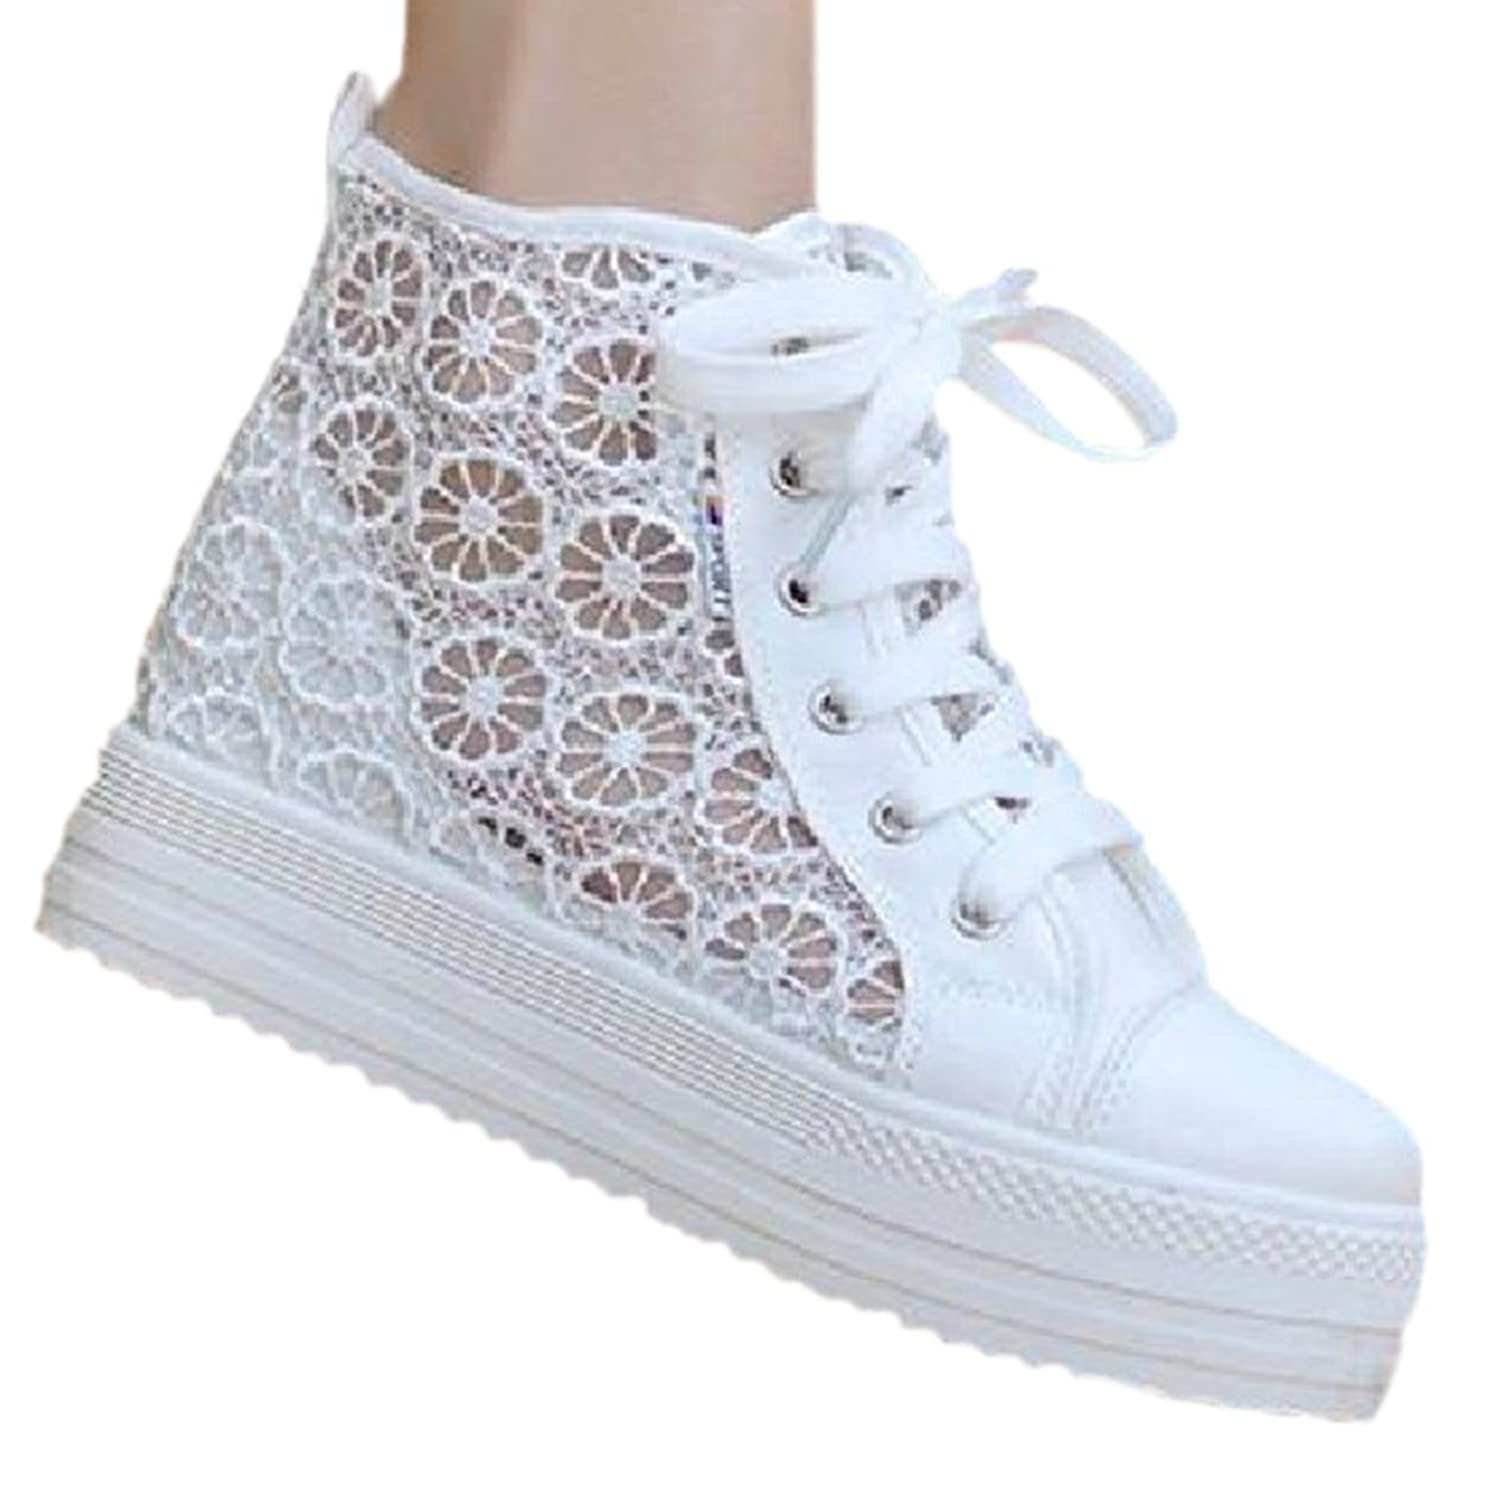 Ace Women's Summer High-top Platform Breathable Lace Shoes Fashion Sneakers (7.5)